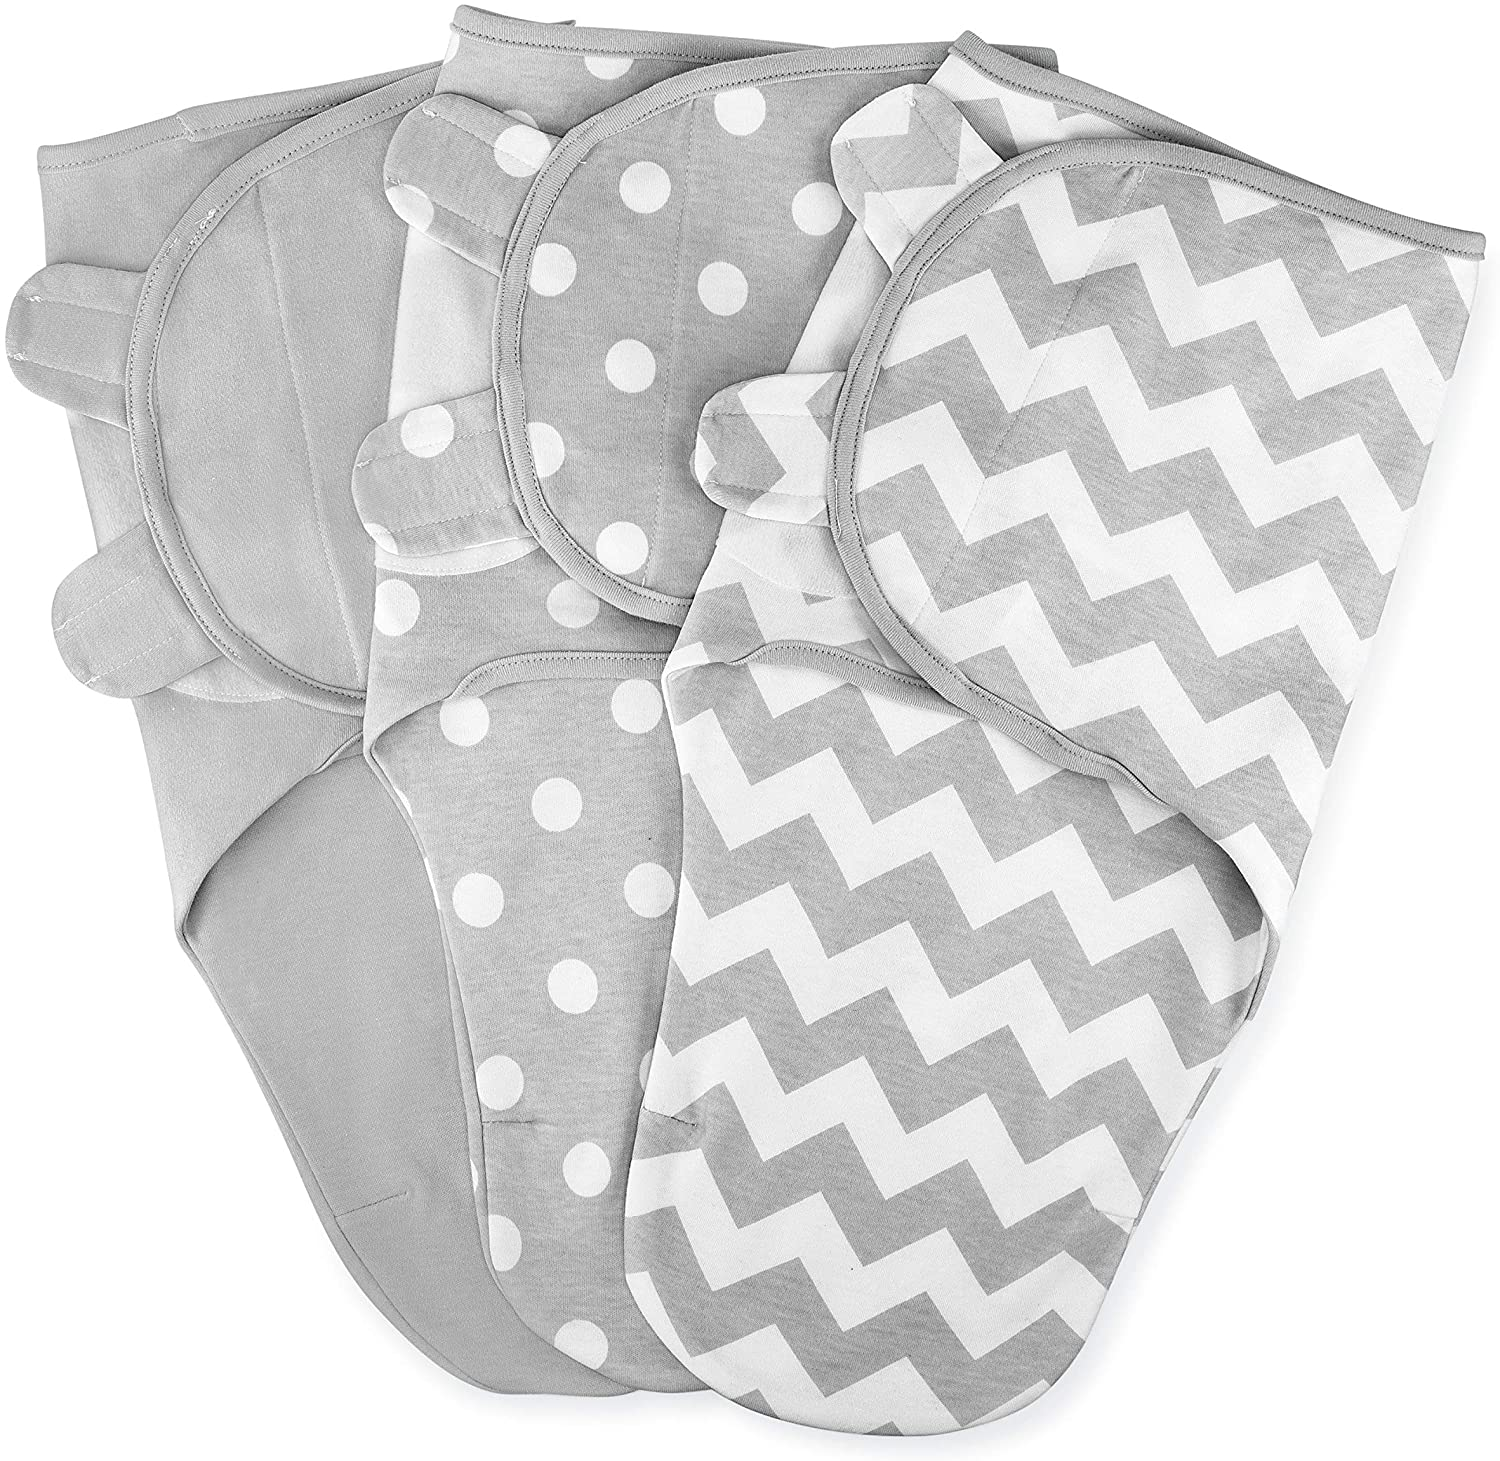 Swaddle Blanket Baby Girl Boy Easy Adjustable 3 Pack Infant Sleep Sack Wrap Newborn Babies by Comfy Cubs 0-3 Months Old (Grey, Small-Medium) (Small-Medium): Home & Kitchen